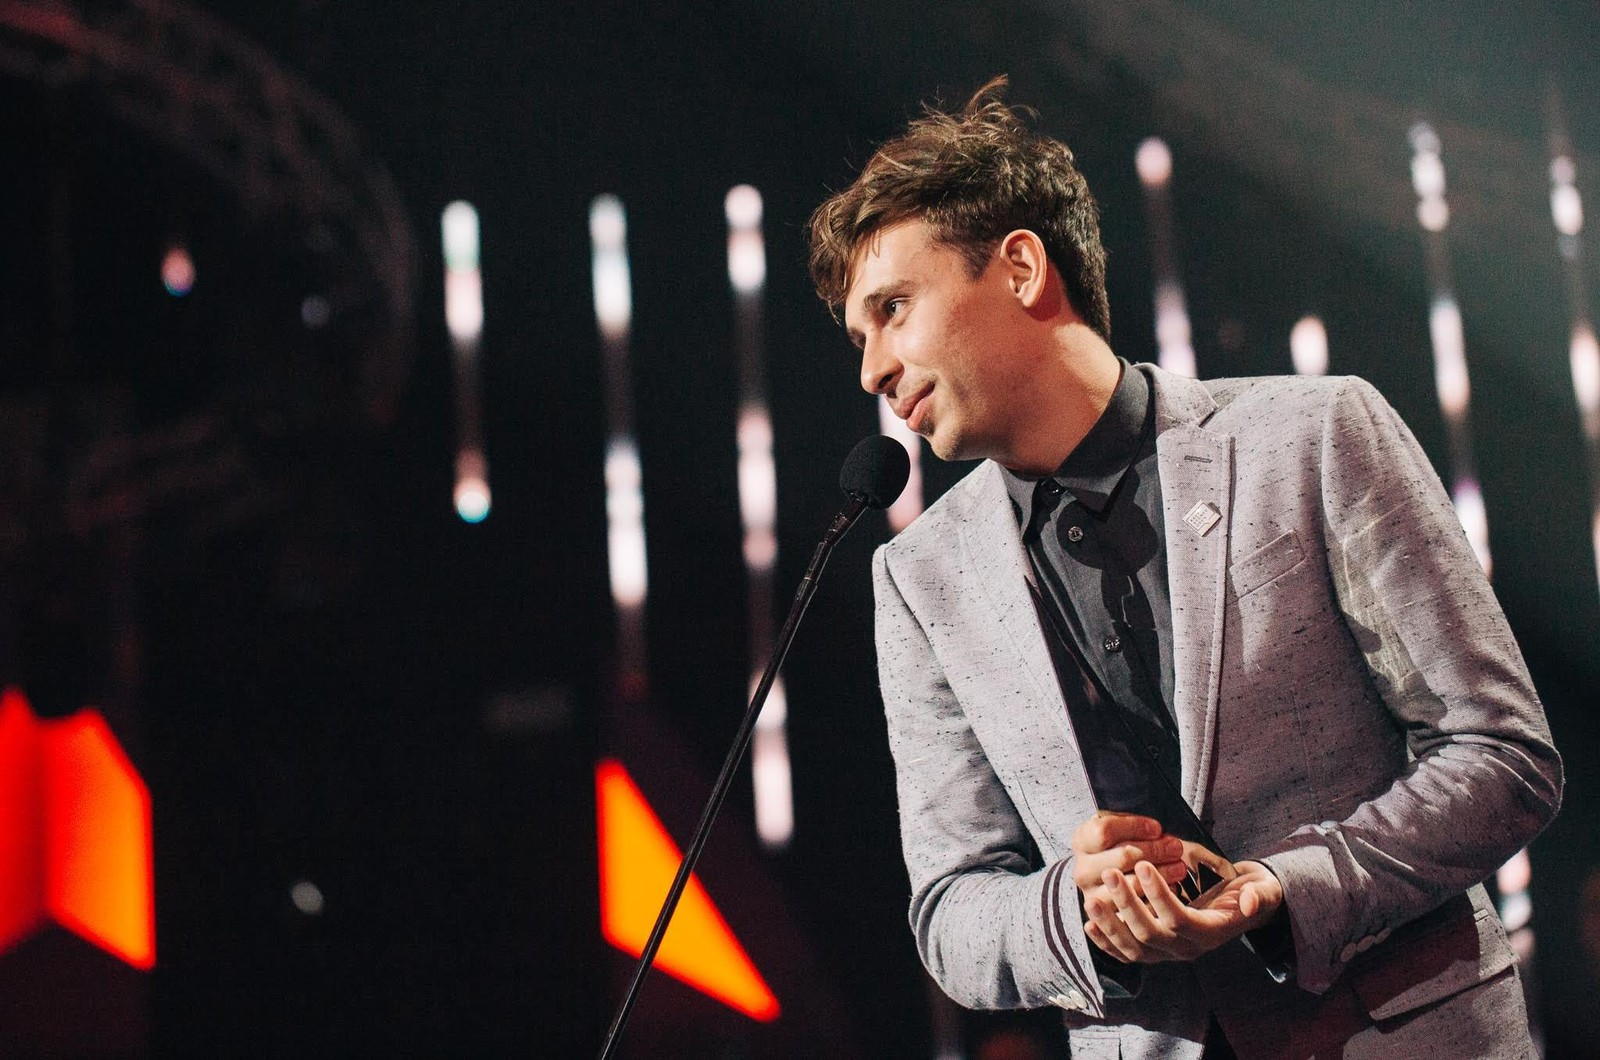 Flume at the 2016 ARIA Awards in Sydney